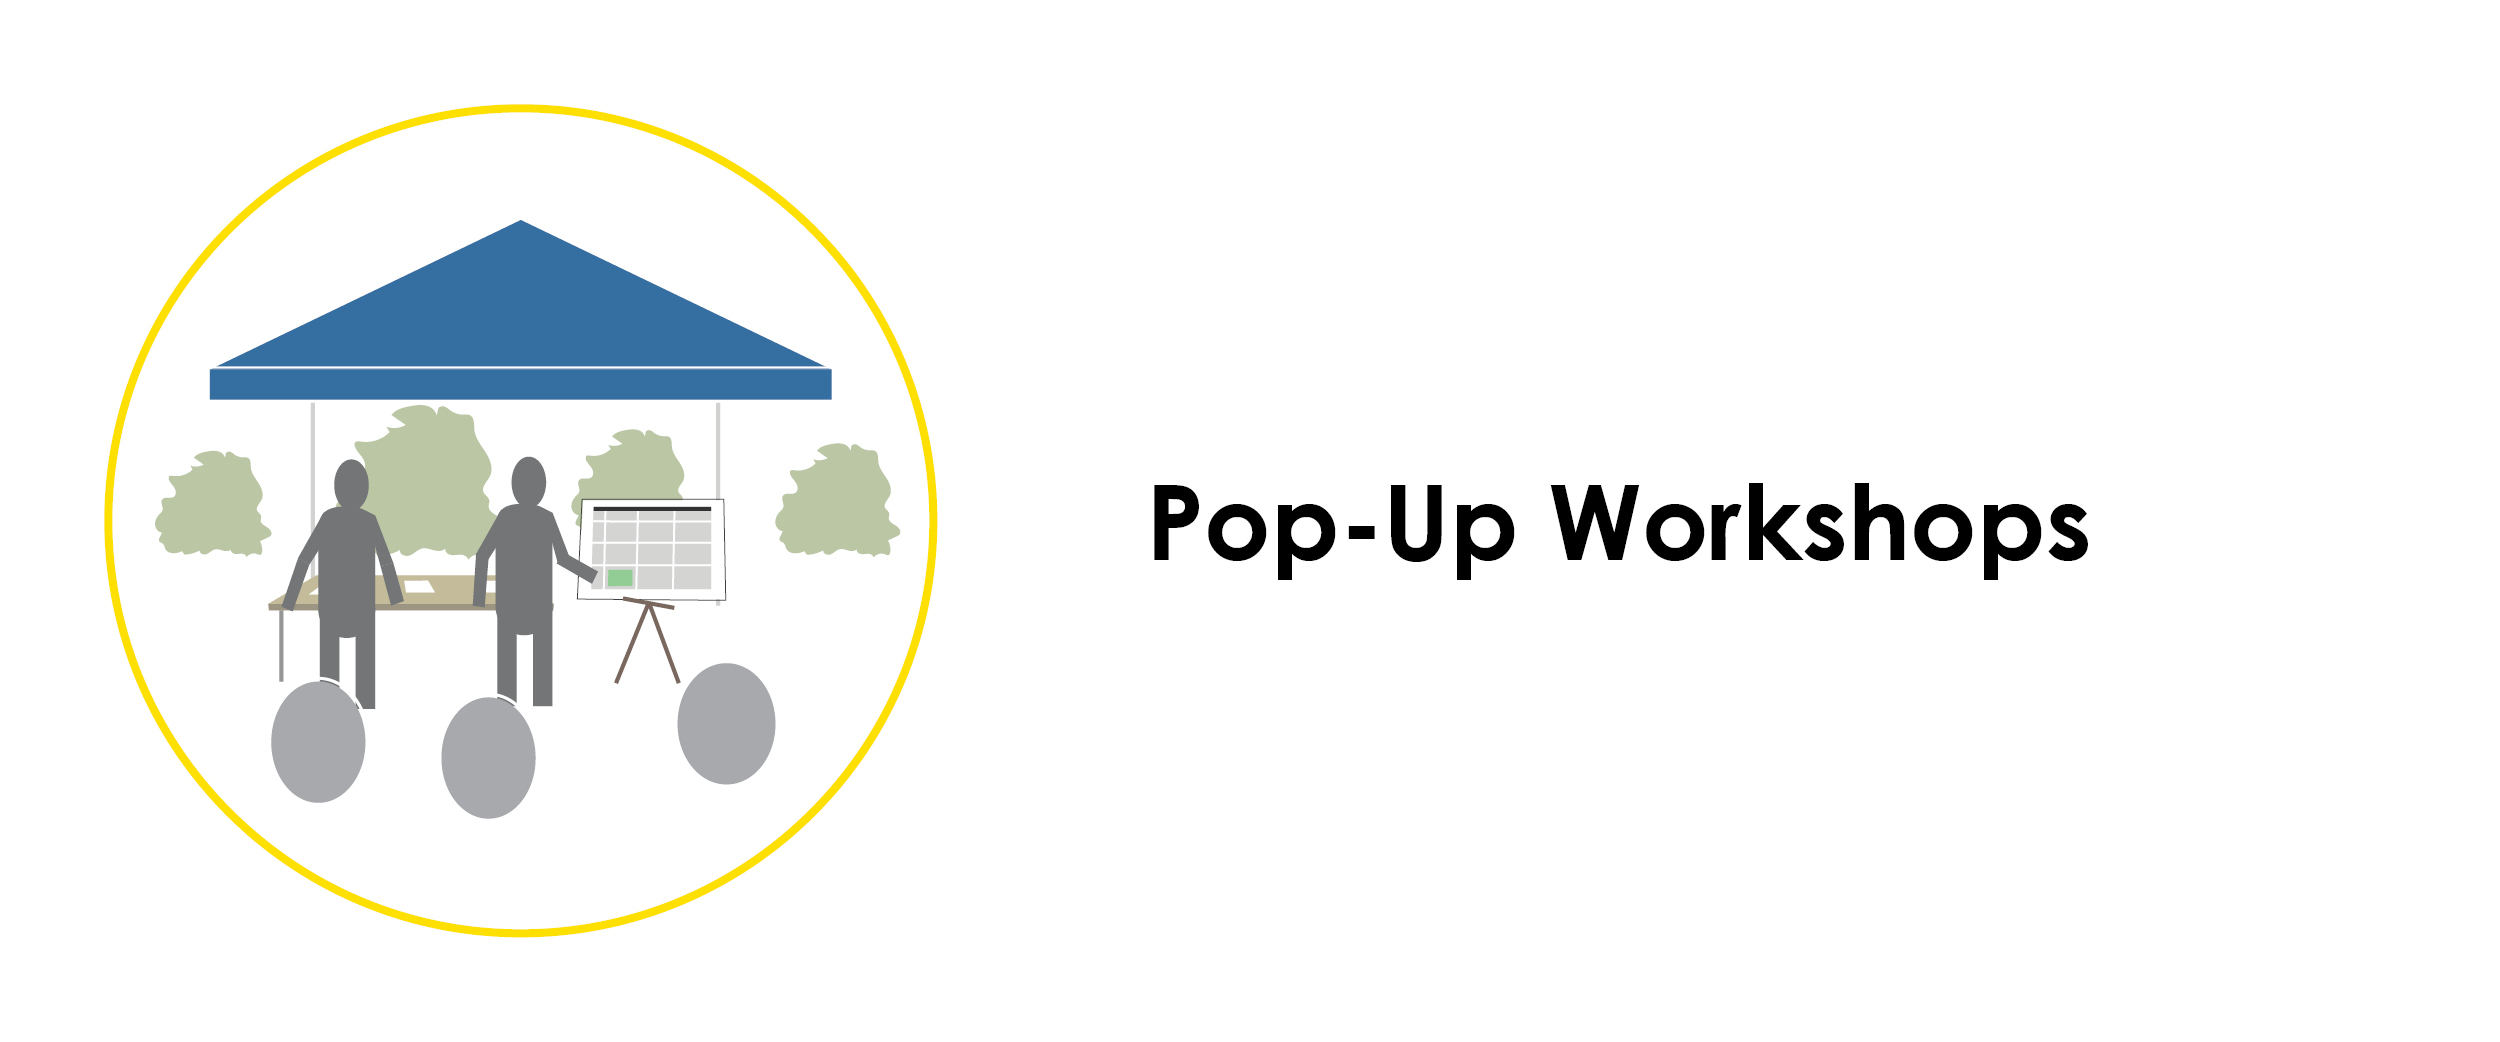 Pop-Up Workshops. Click on image to learn more.